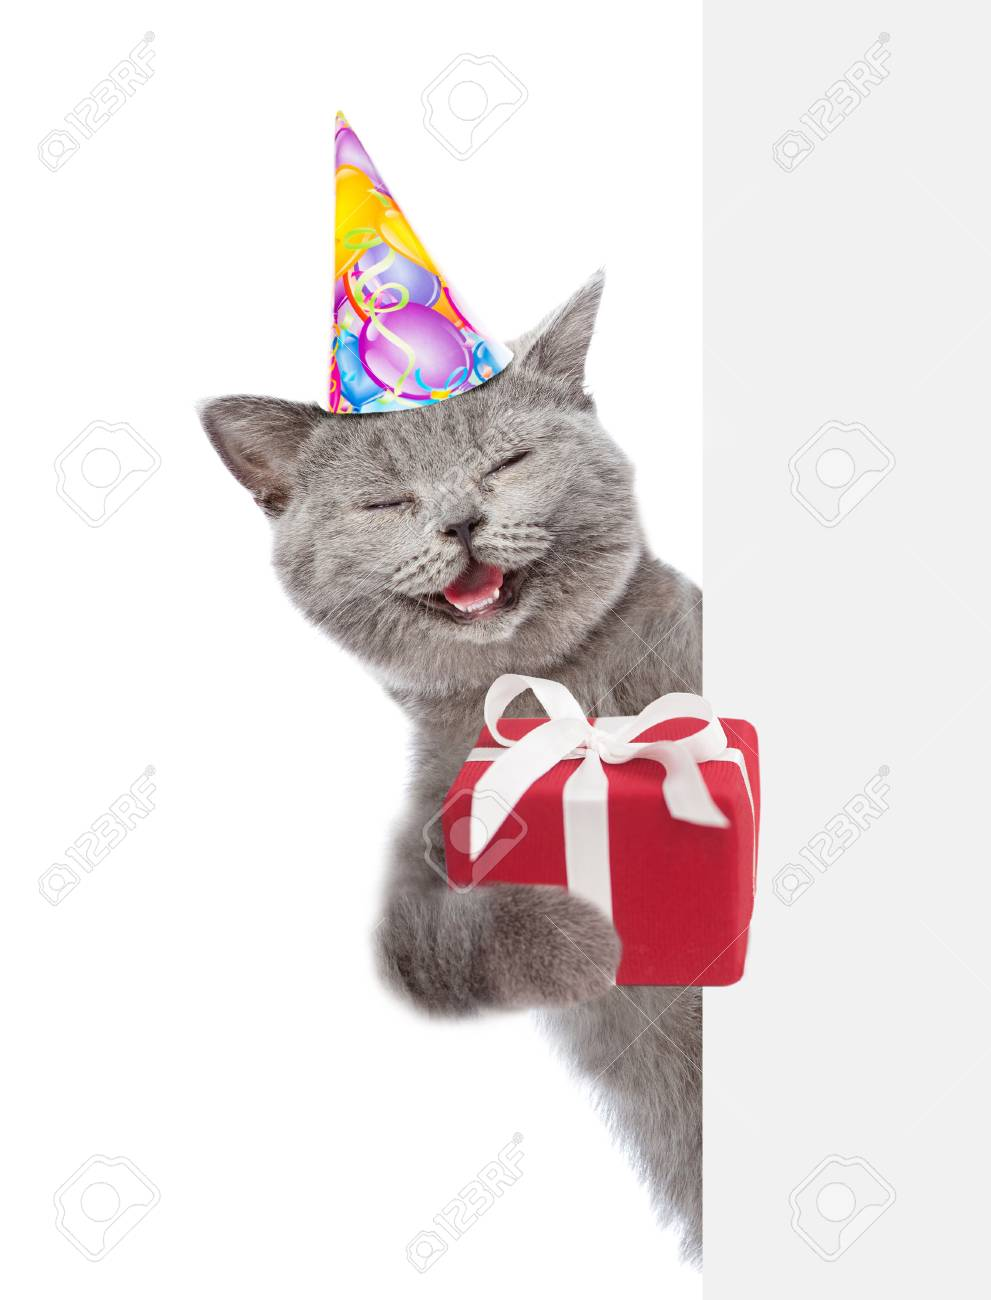 Happy Cat In Party Hat Holding Gift Box And Peeking Above White.. Stock  Photo, Picture And Royalty Free Image. Image 89134712.